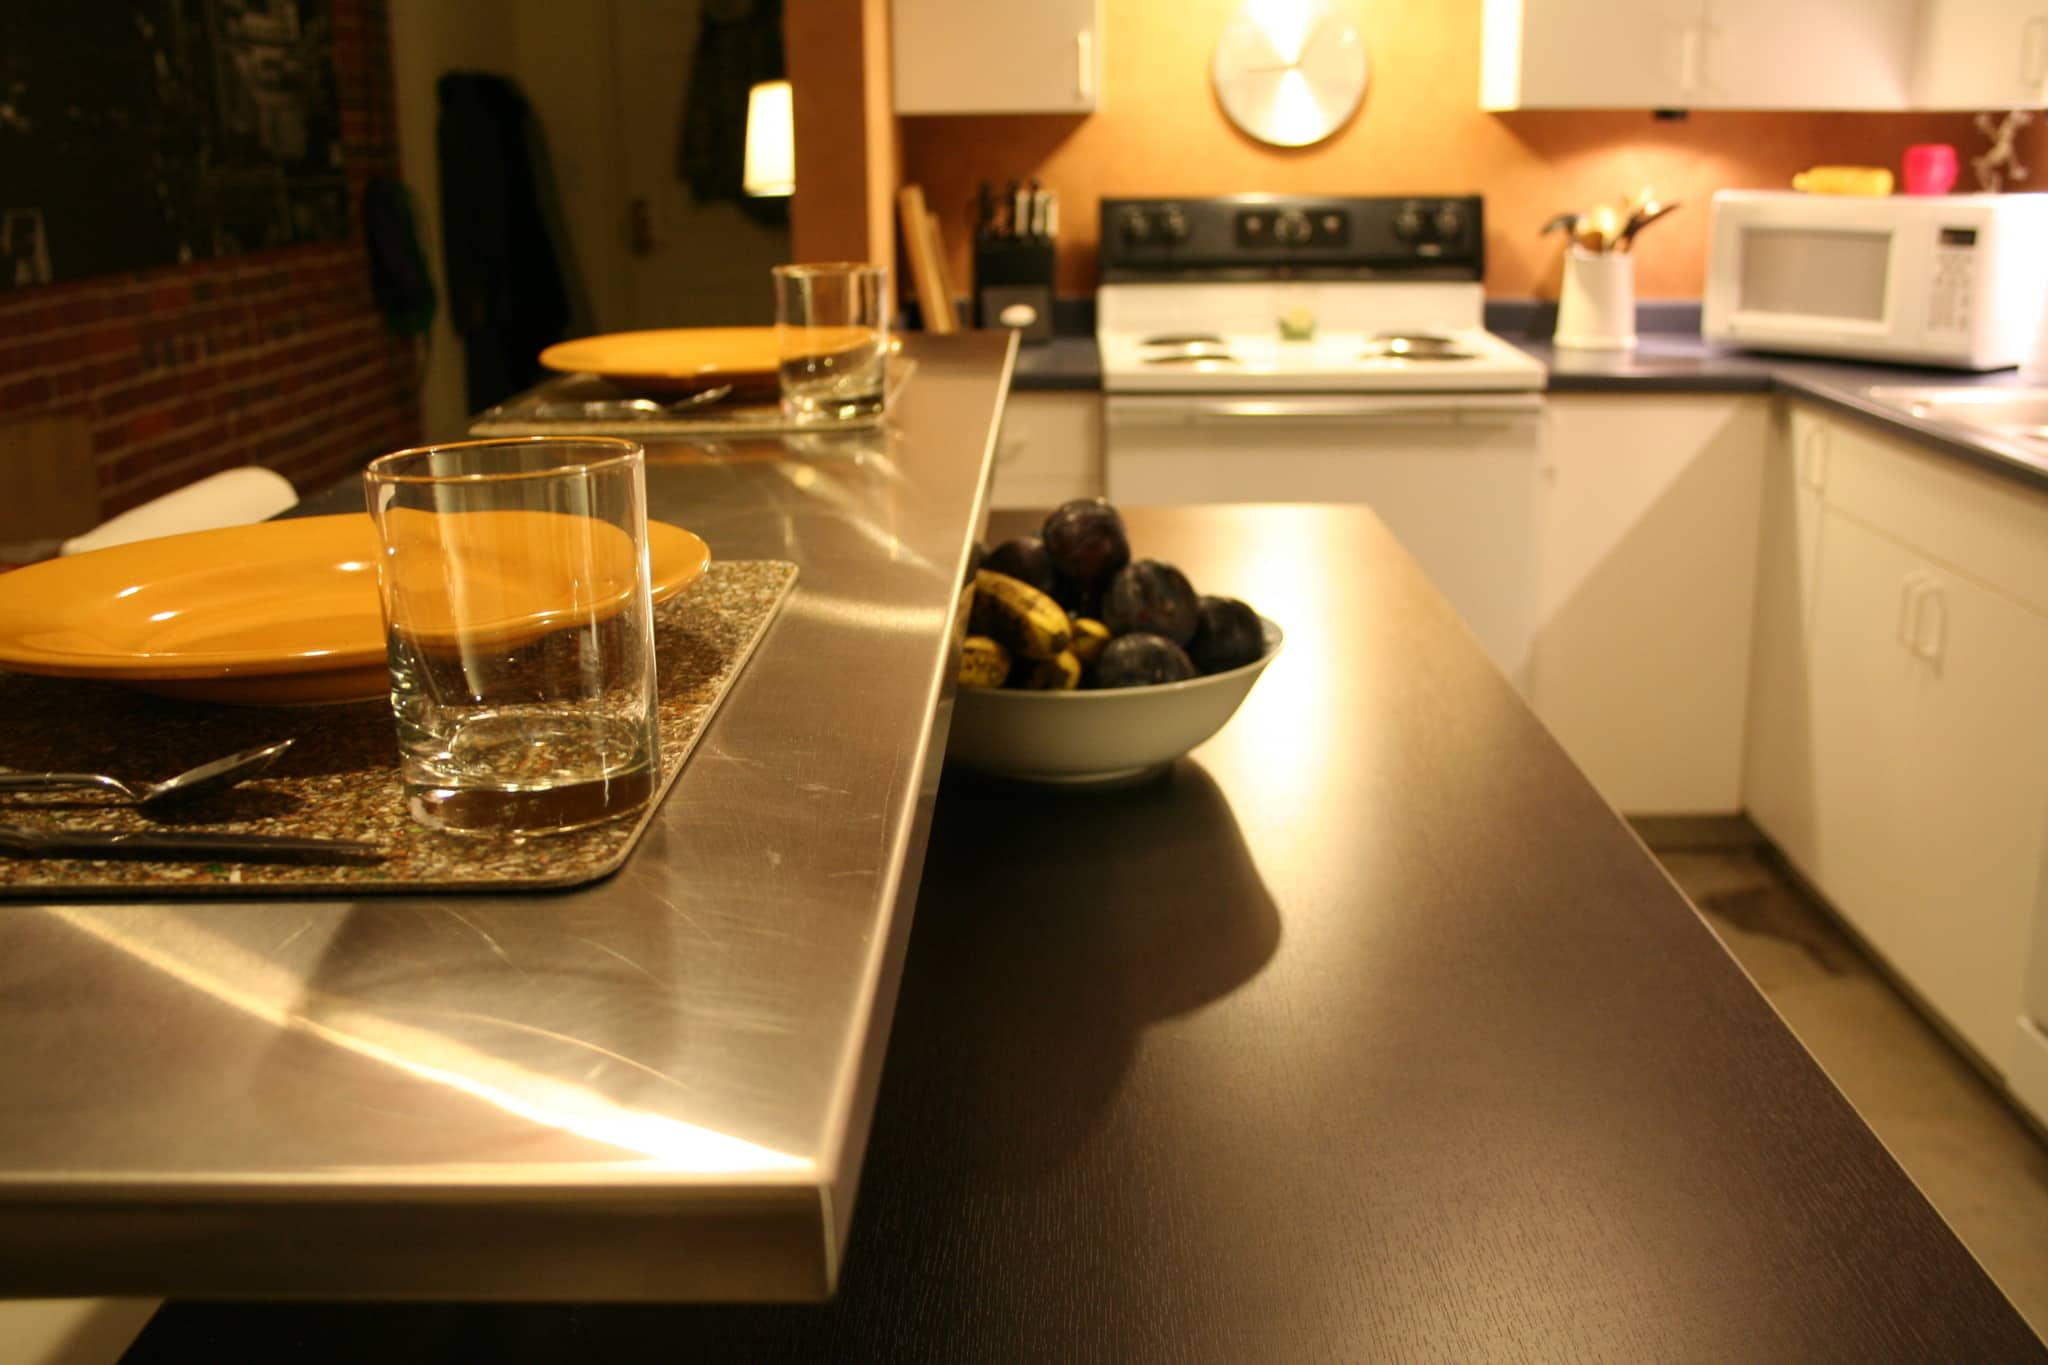 Kate's Creatively Renovated Rental Kitchen: gallery image 4